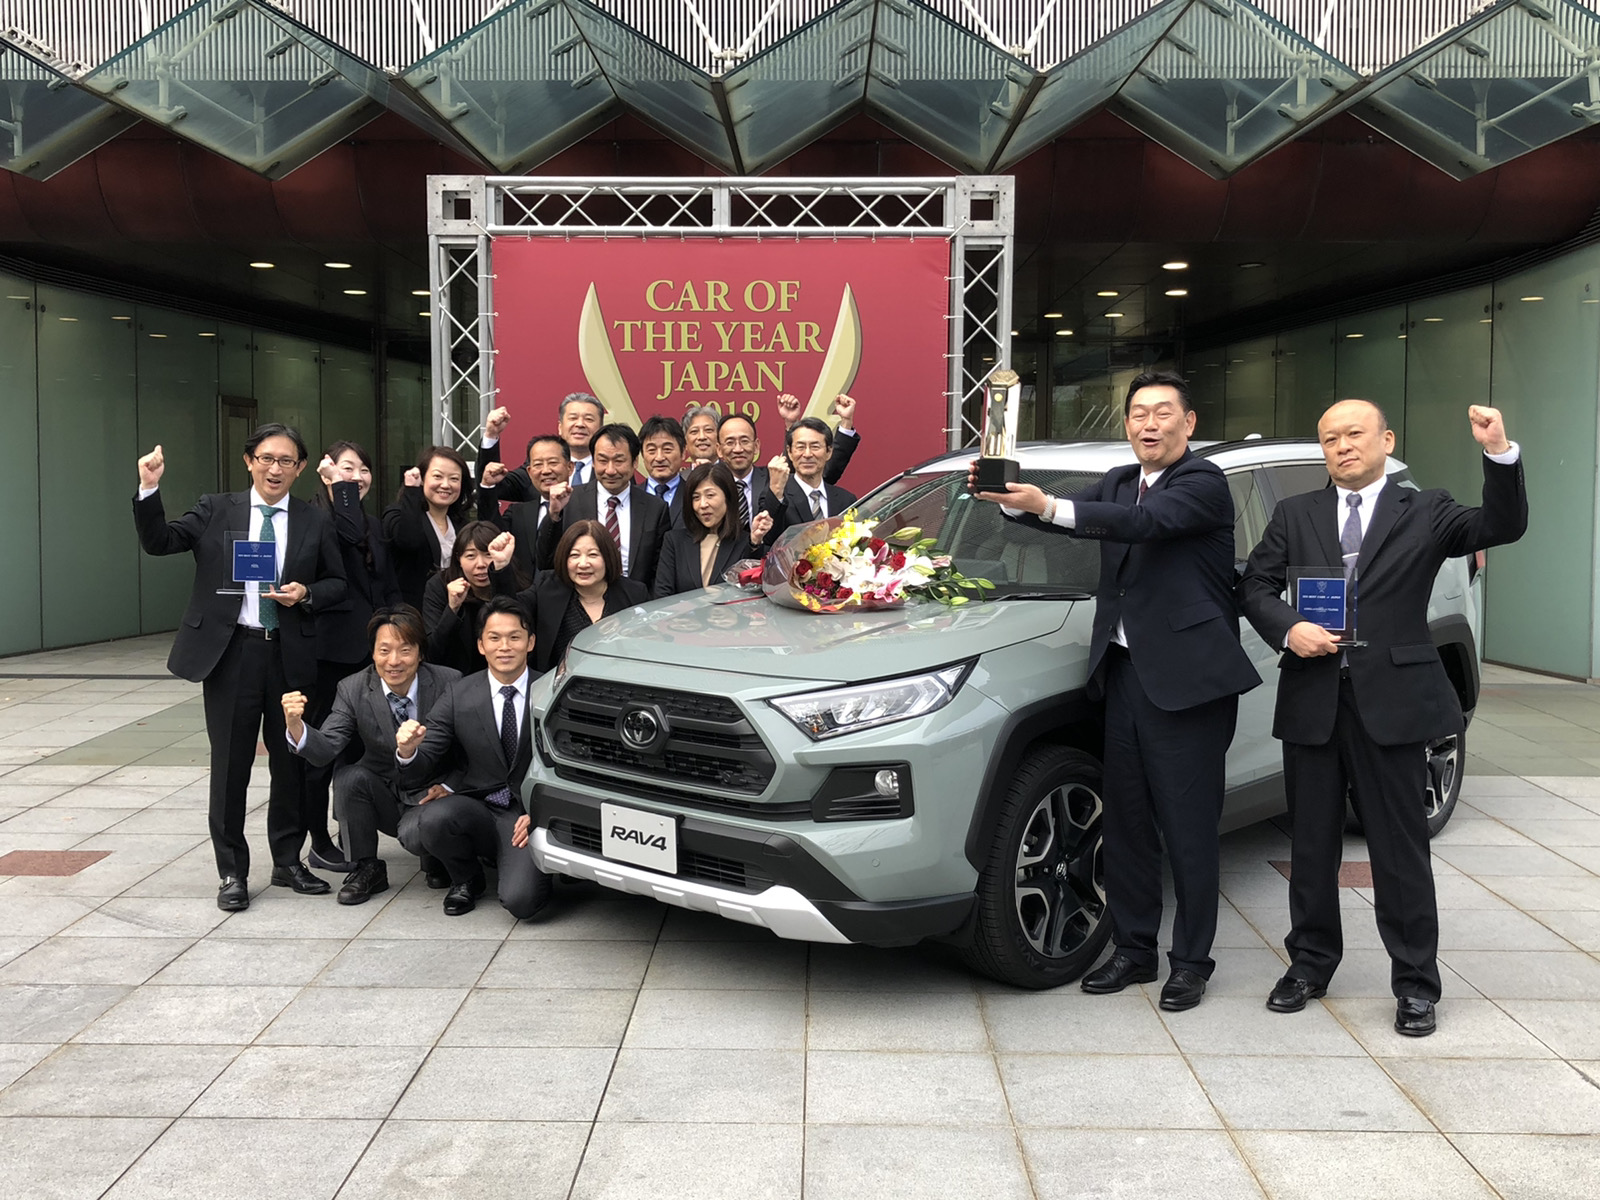 JAPANESE CAR OF THE YEAR AWARDS 2019 – THE WINNERS